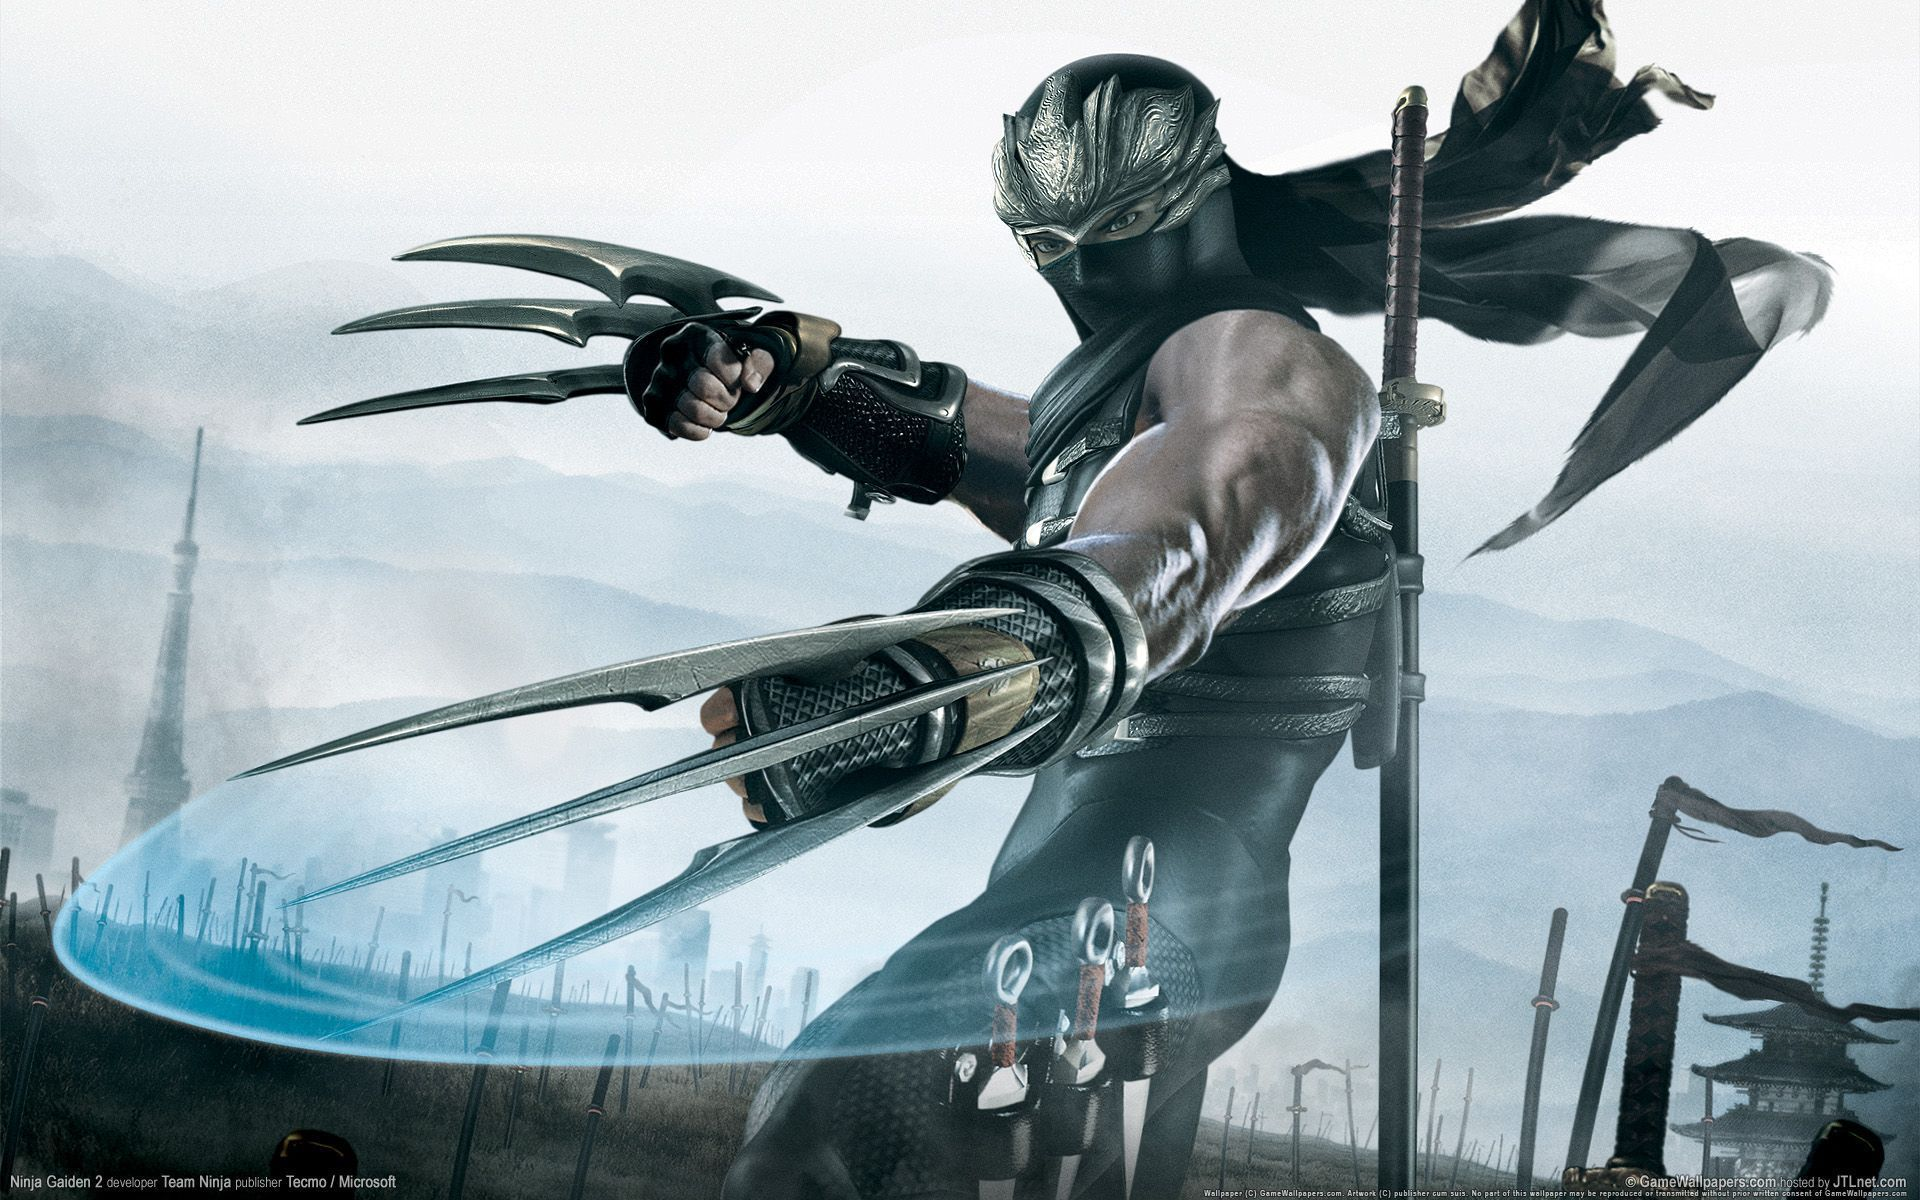 Pin By Joe On Video Games Ninja Gaiden Gaming Wallpapers Ninja Wallpaper